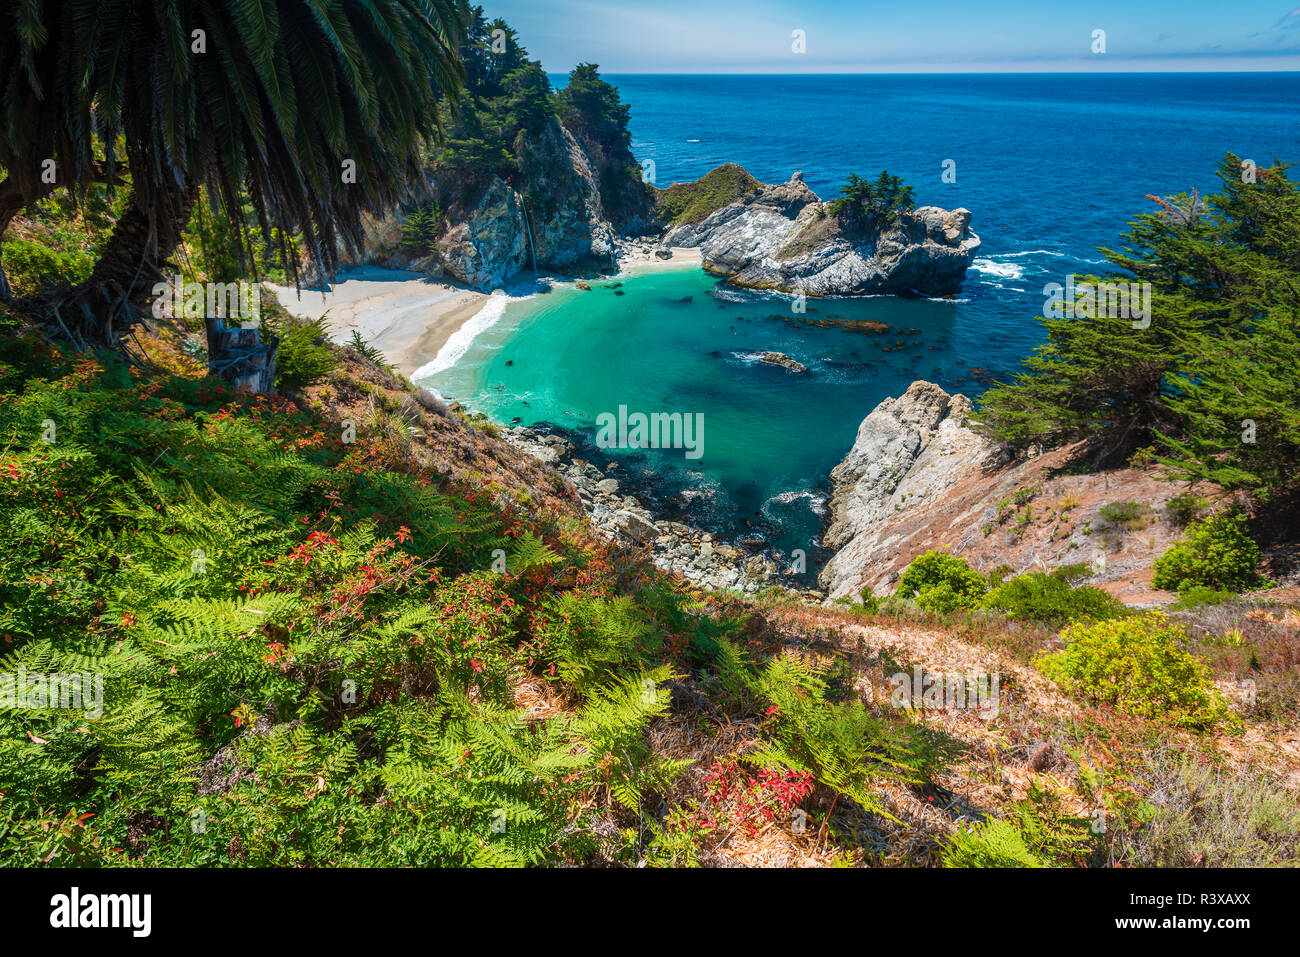 McWay Cove, Julia Pfeiffer Burns State Park, Big Sur, California, USA - Stock Image